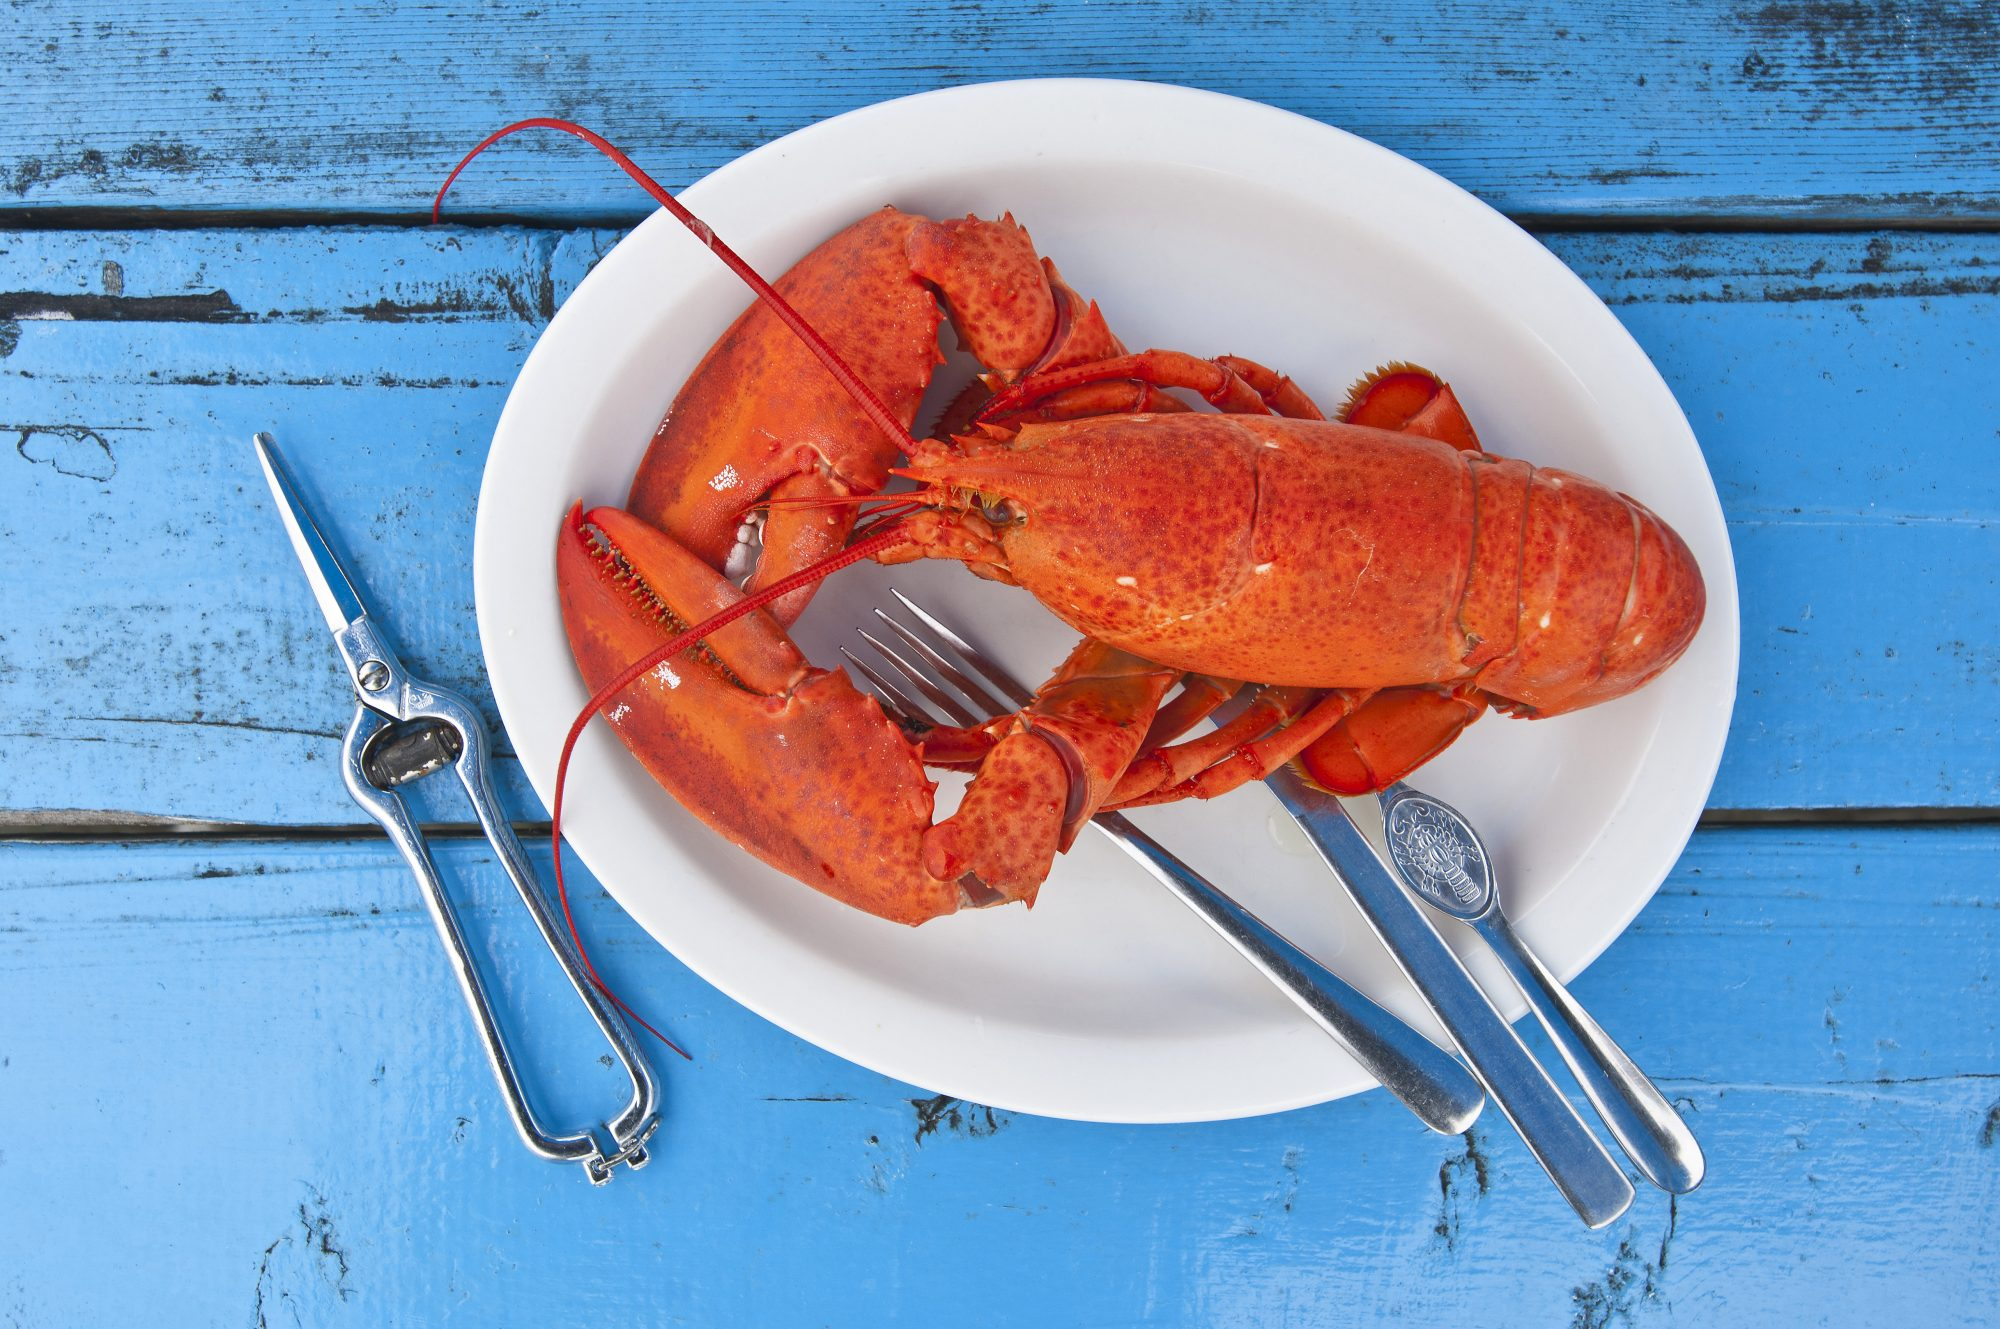 10-lobster-seafood